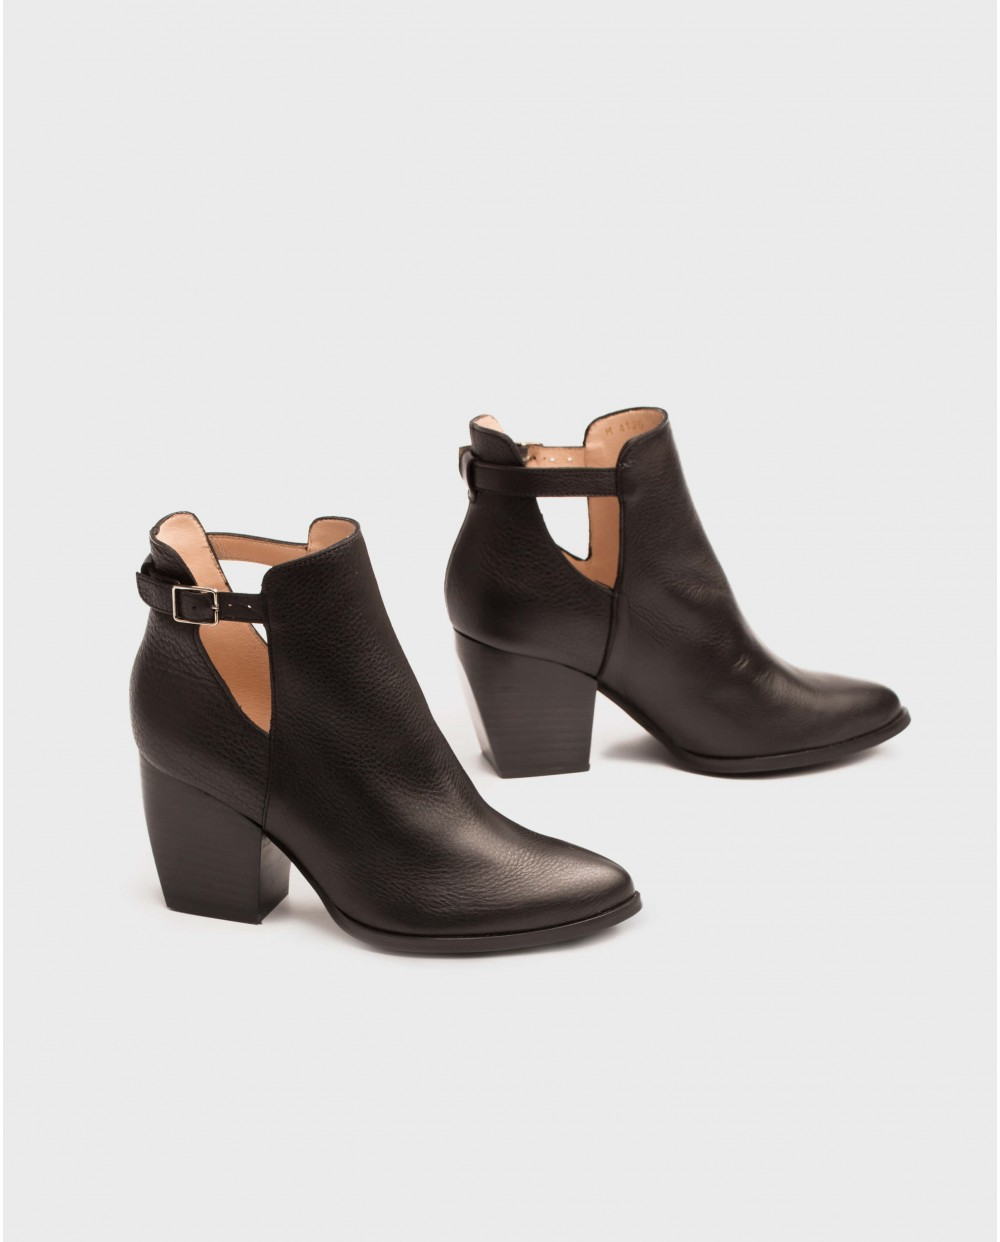 Wonders-Ankle Boots-Cowboy style ankle boot with strap detail